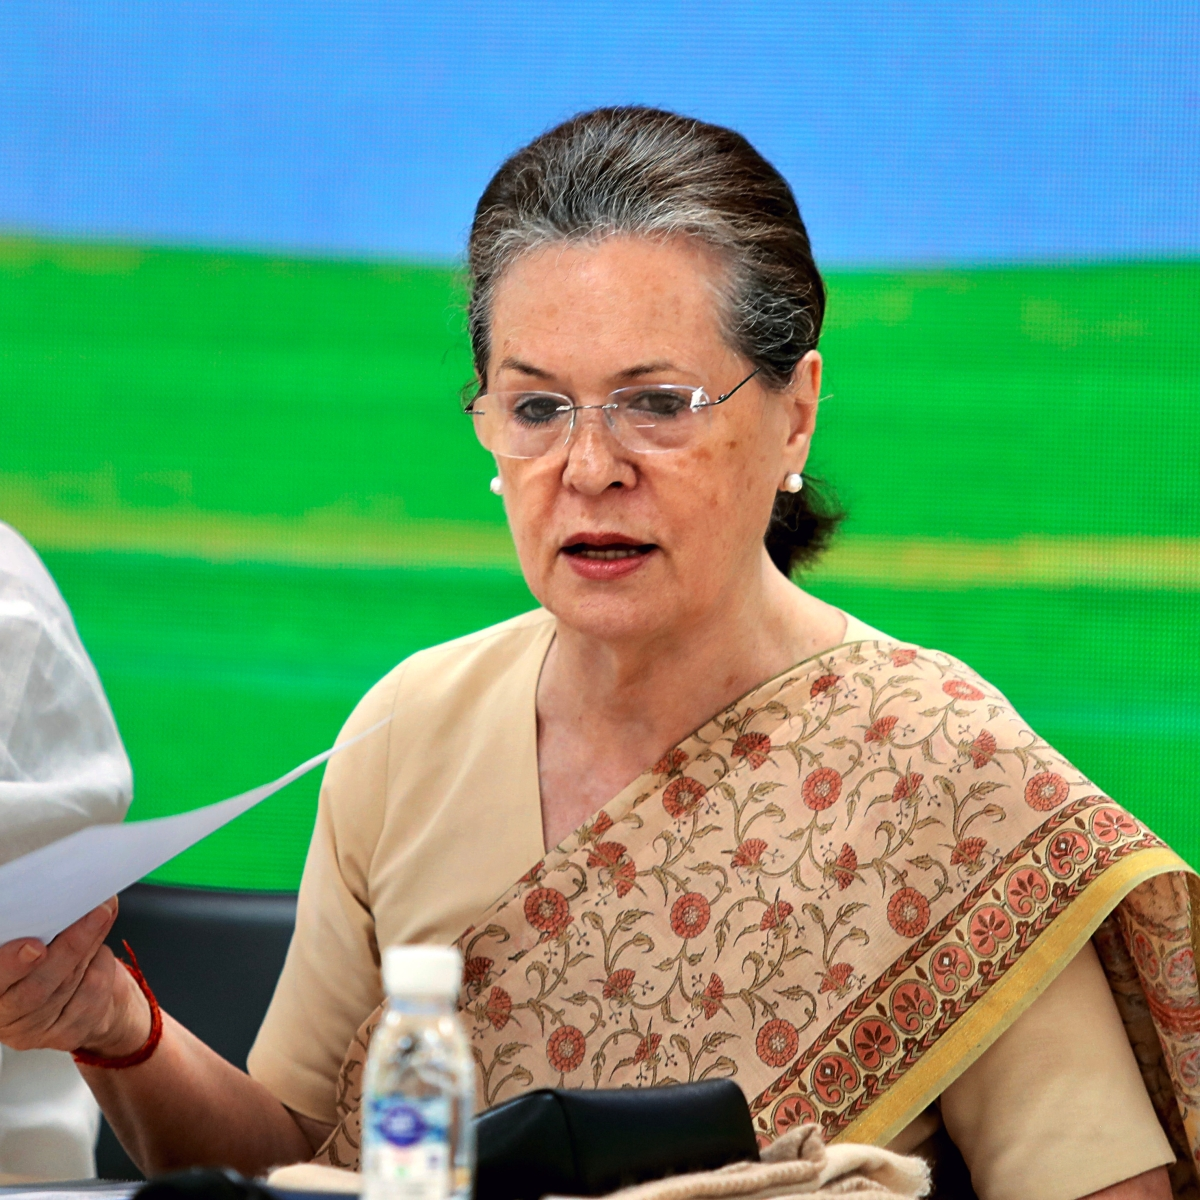 FIR filed against Sonia Gandhi over Congress party's tweet on PM-CARES fund